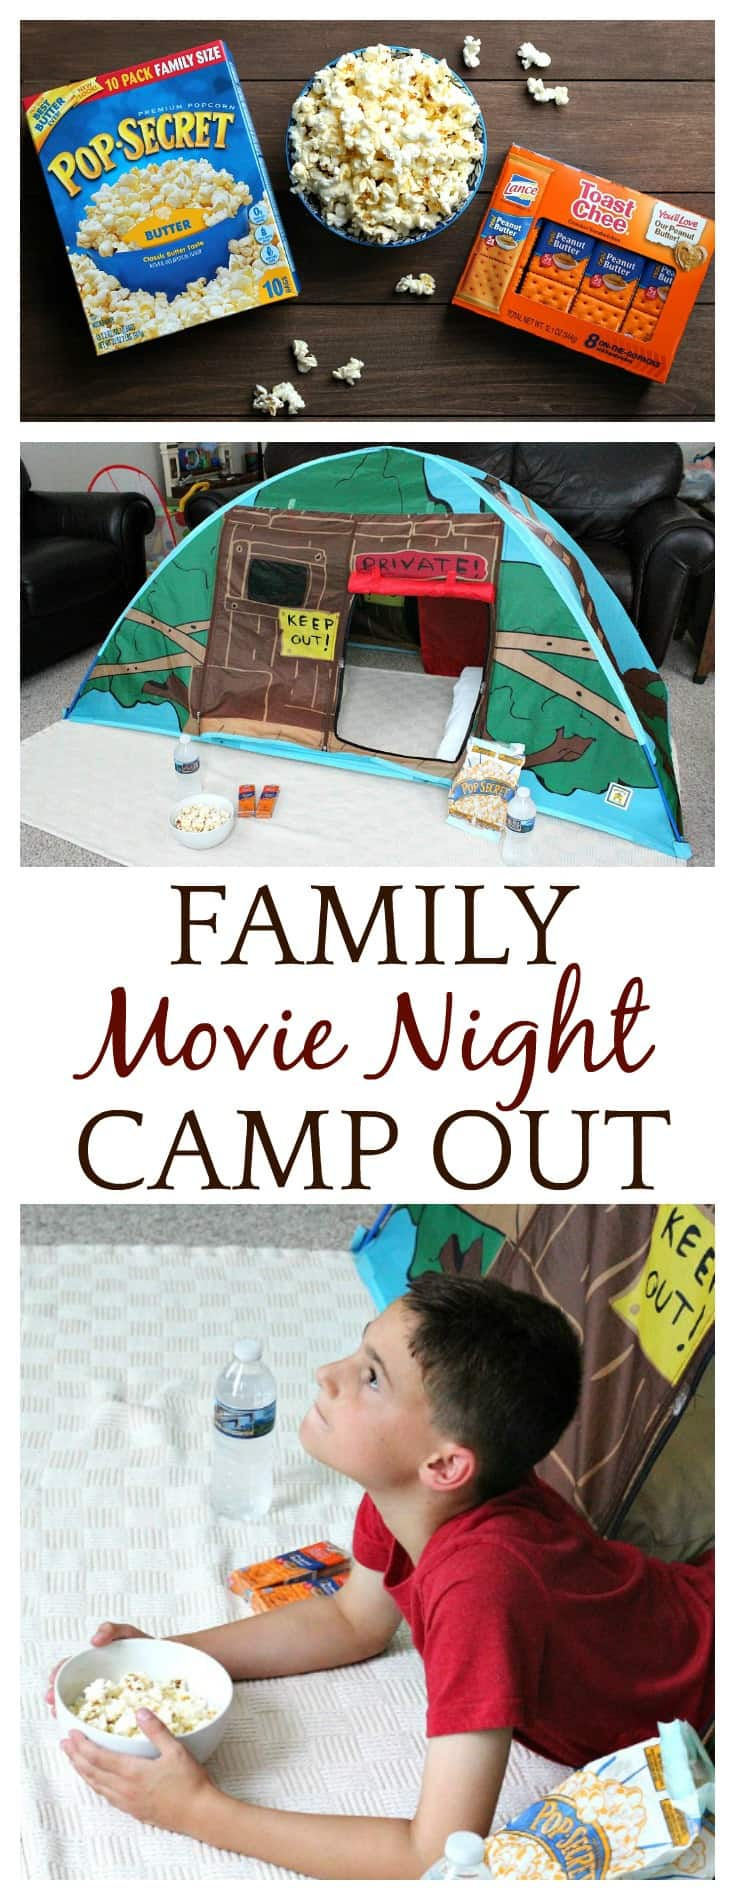 See how our family does a movie night camp out - complete with a tent, blankets, and plenty of Pop Secret Popcorn and Lance Snacks from Walmart! #ad #Pop4Captain #Pmedia